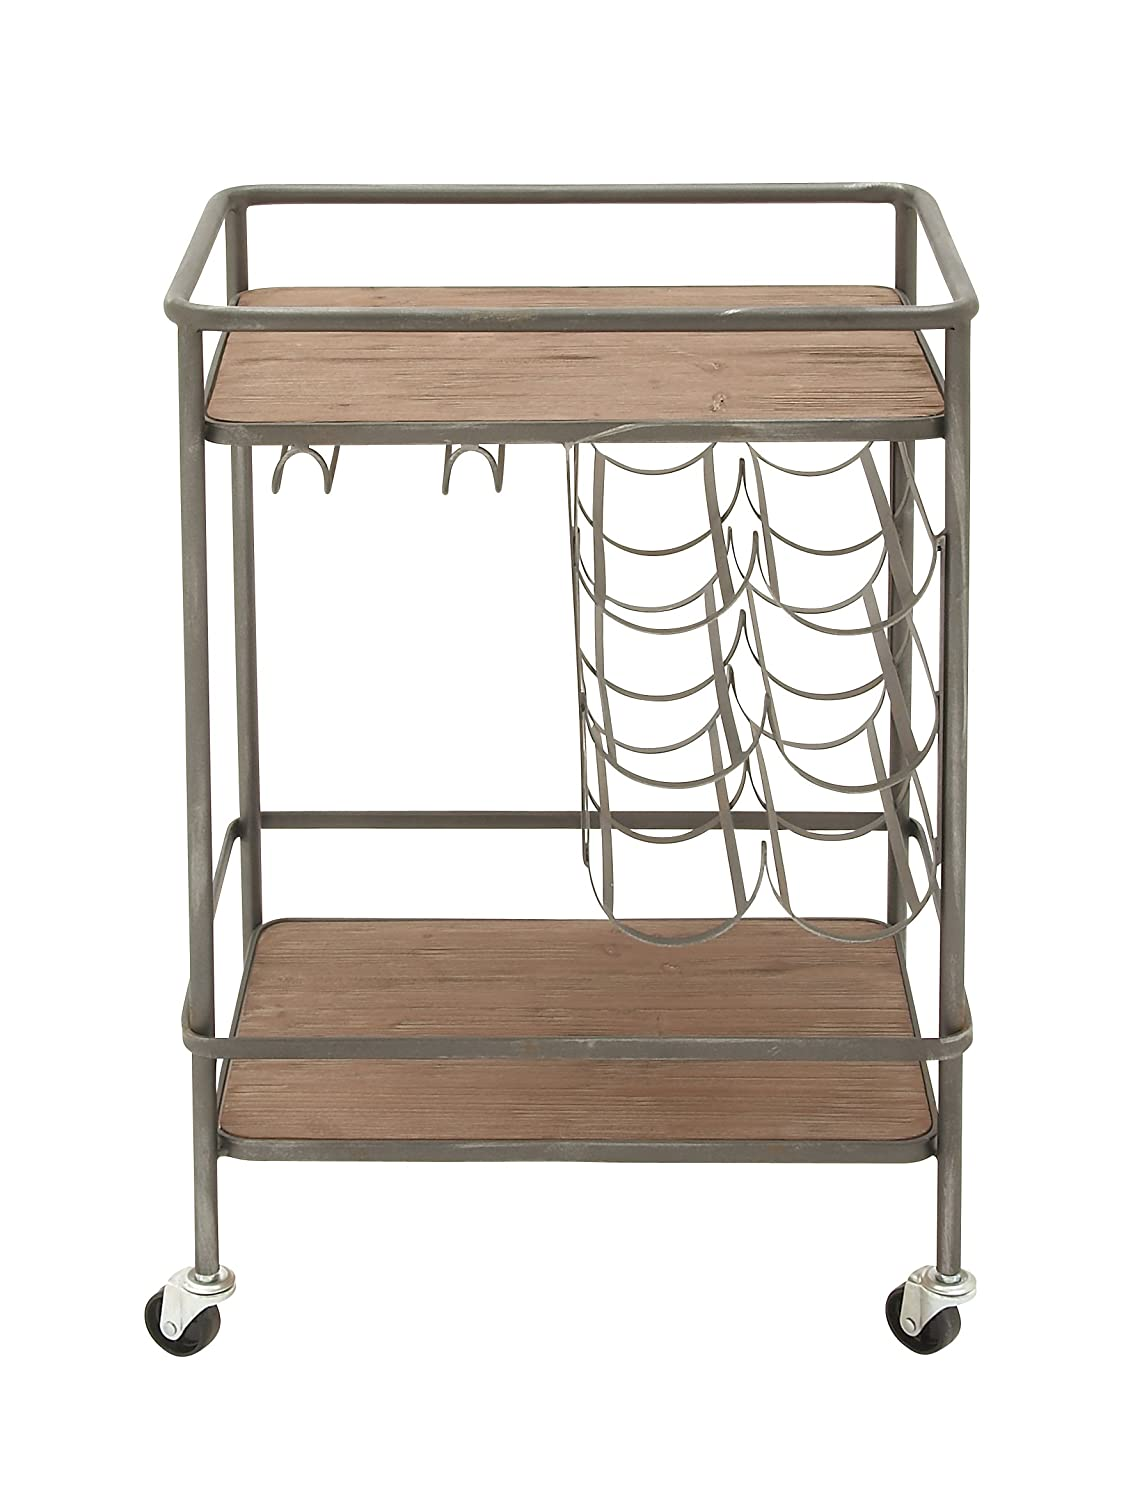 Deco 79 48673 Metal Wood Winerack bar cart, 20 W x 30 H